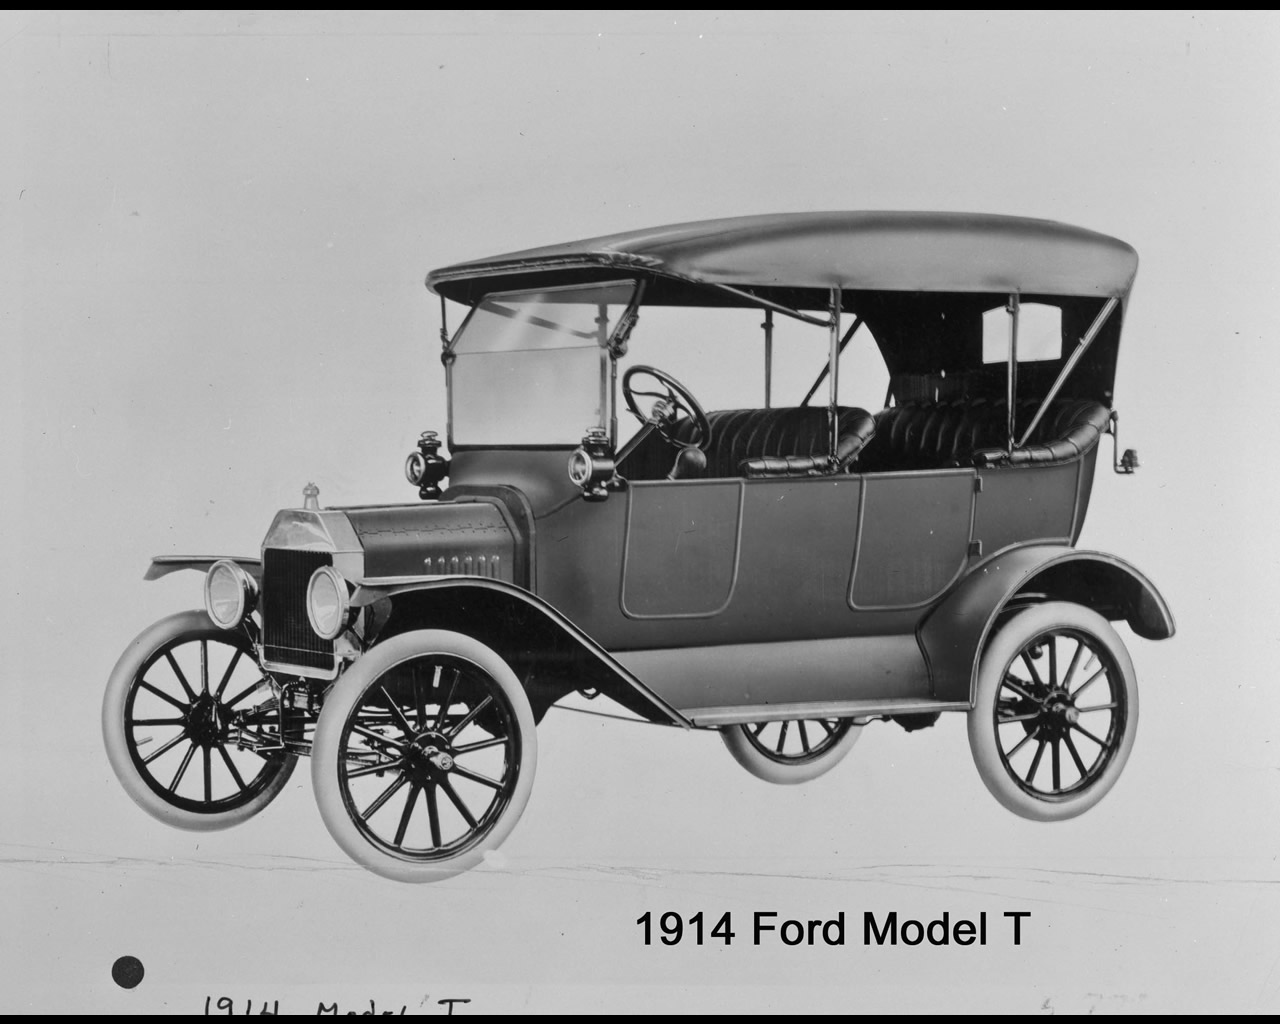 https://i1.wp.com/www.autoconcept-reviews.com/cars_reviews/ford/ford-model-t-1908-1925/wallpaper/1914%20model%20Ttouring%20copy.jpg